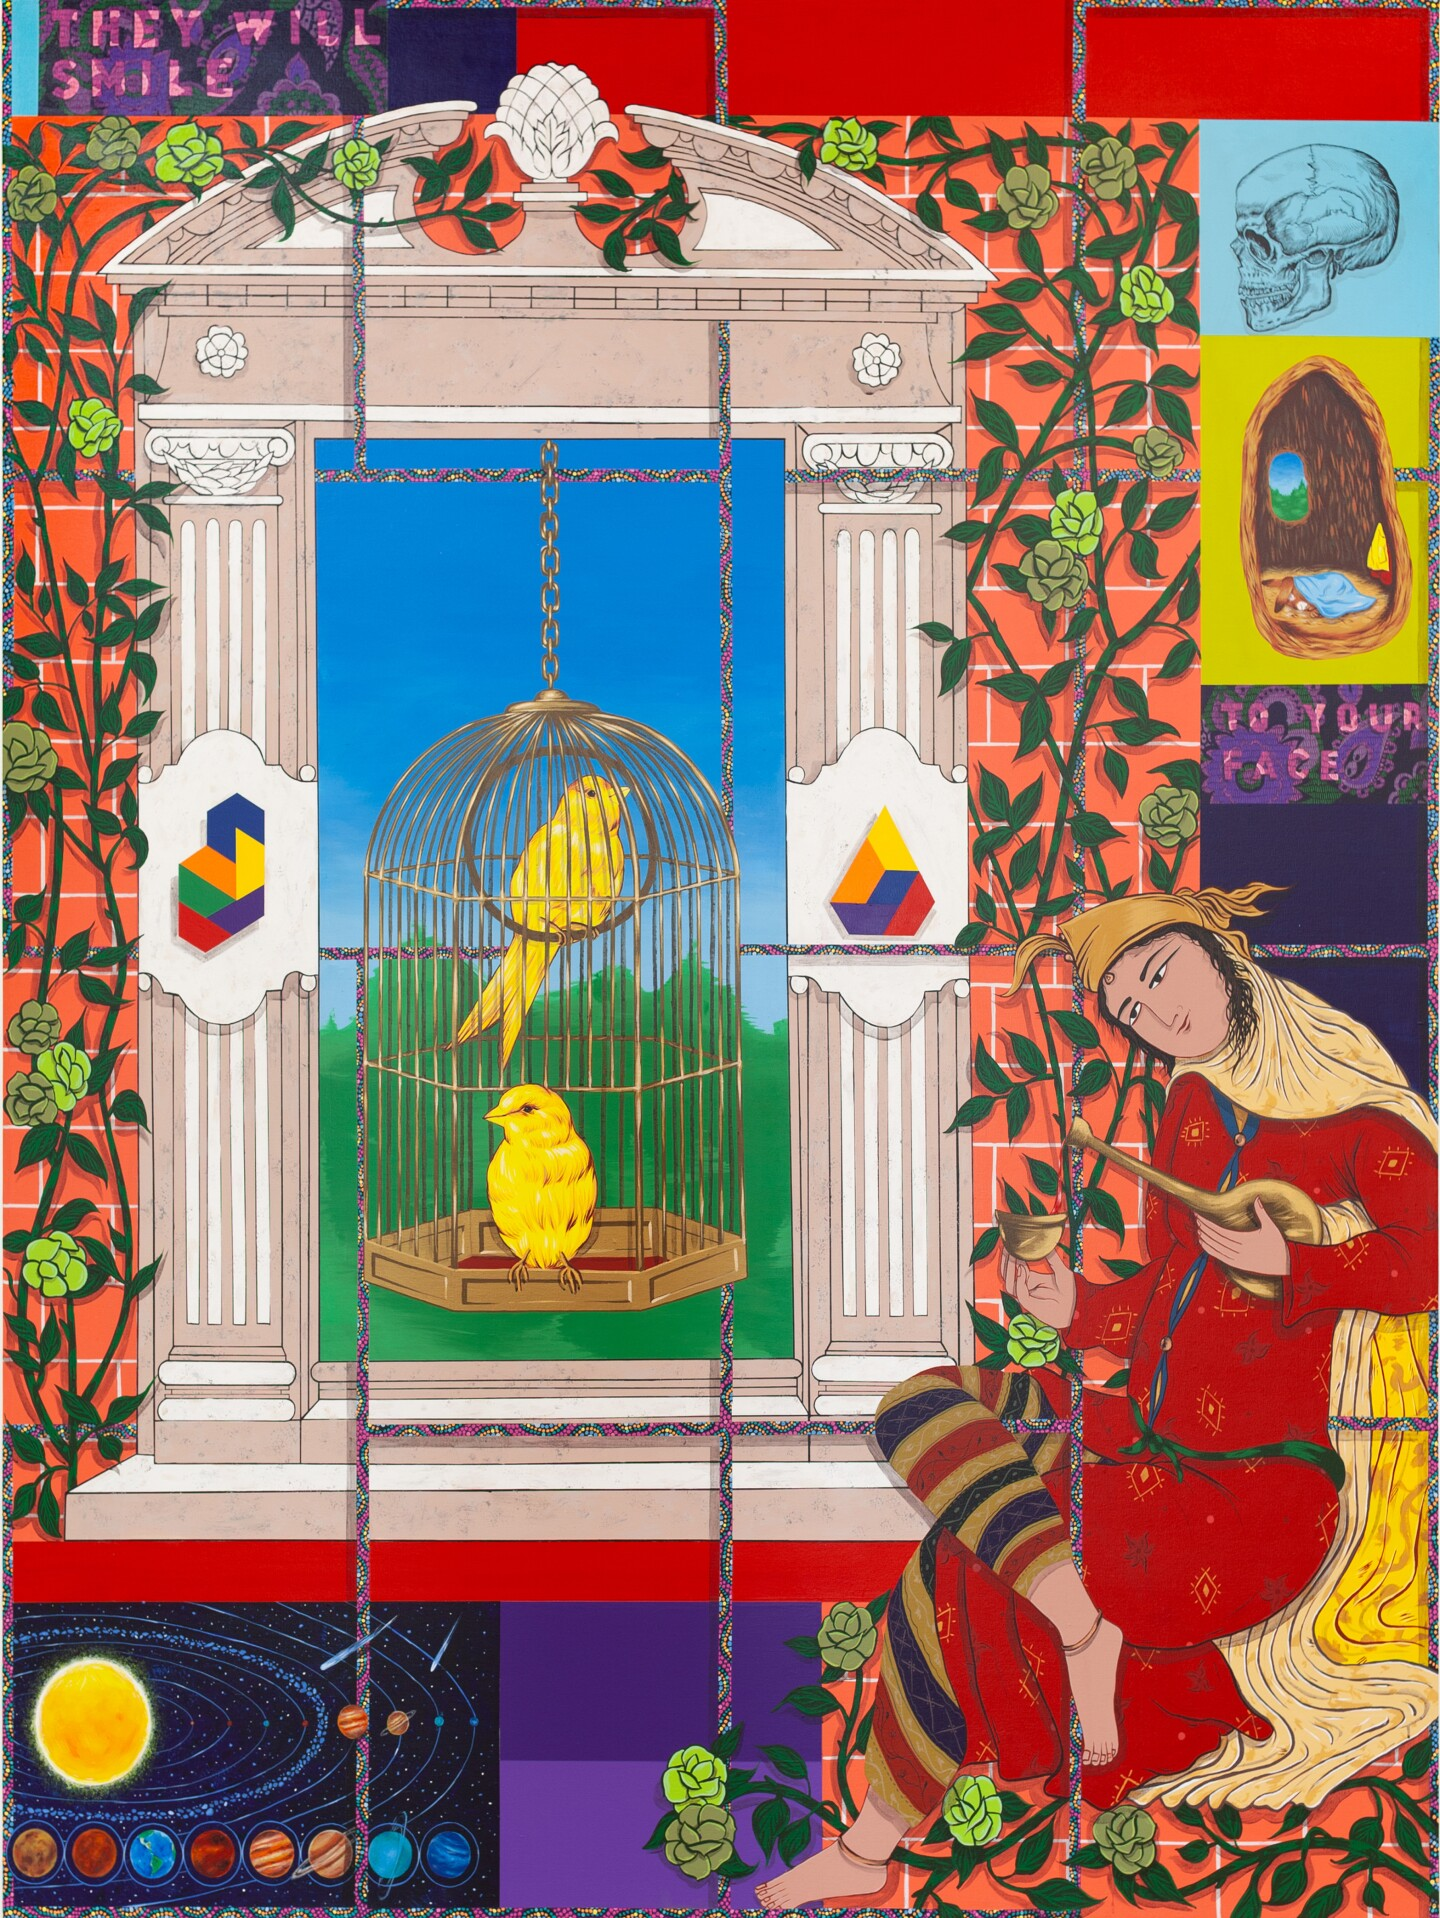 A man sits by a bird cage with two birds.